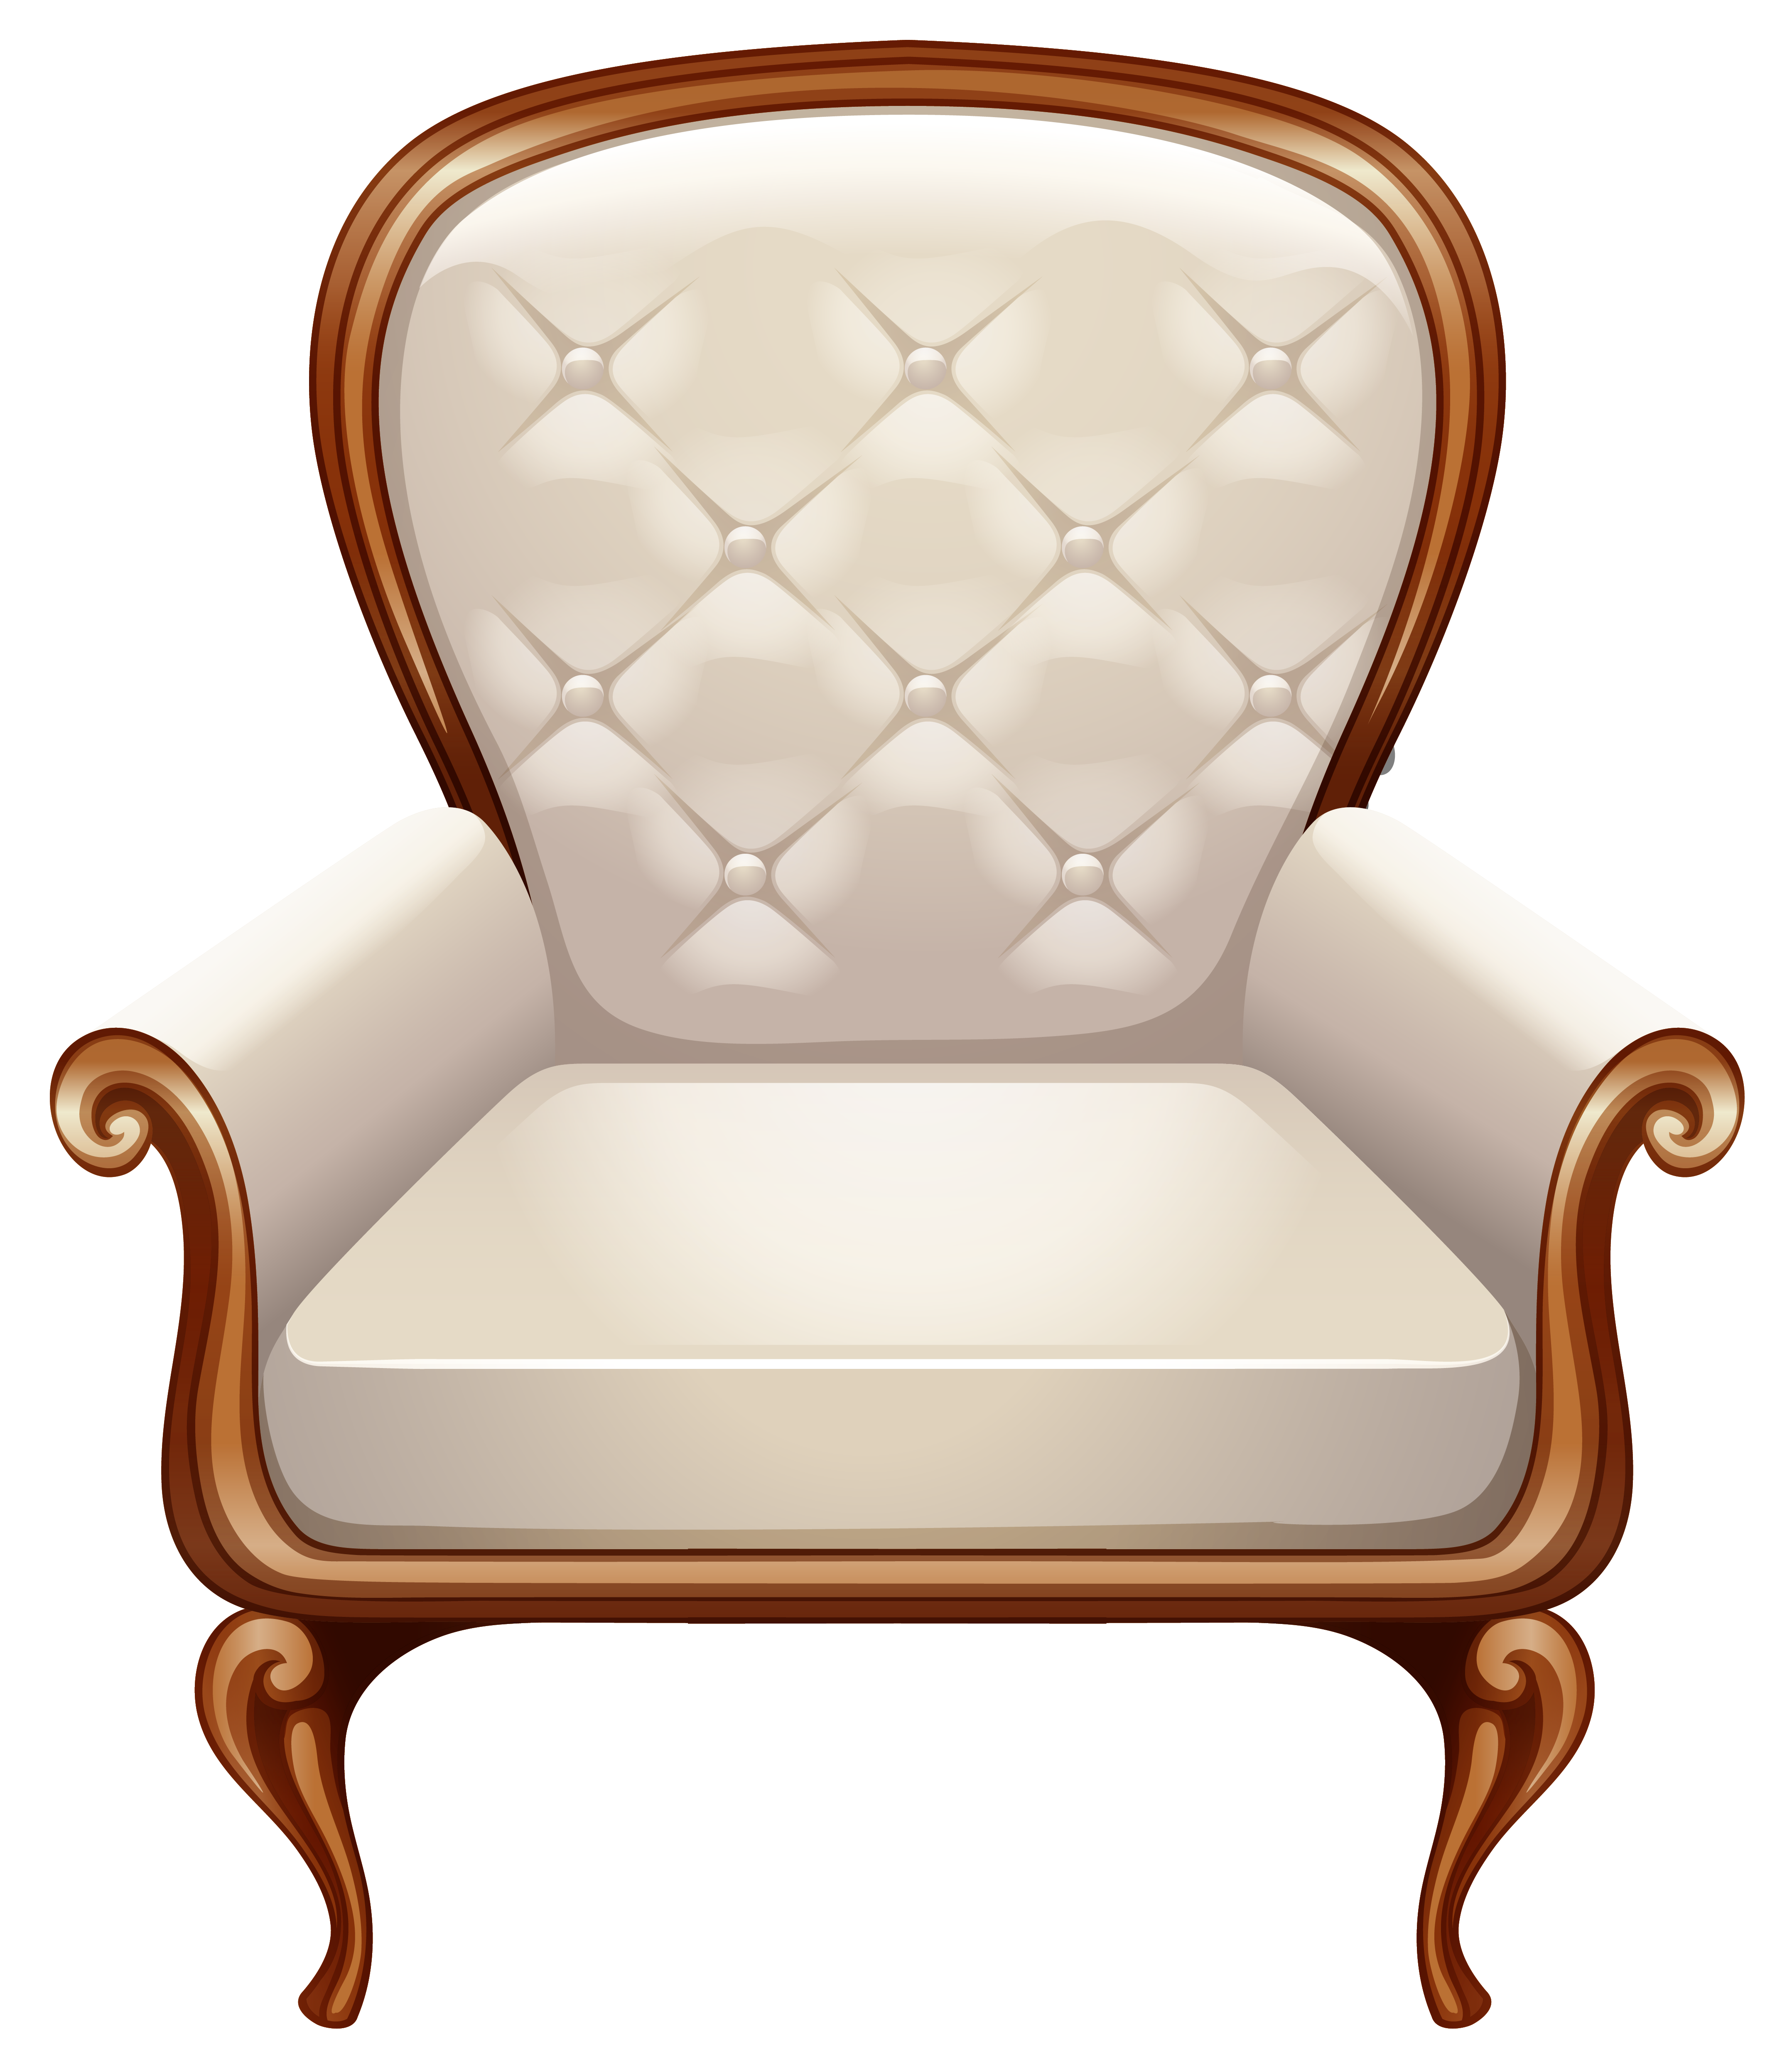 Free Chair Png Free Chair Png Transparent Images 15623 Pngio